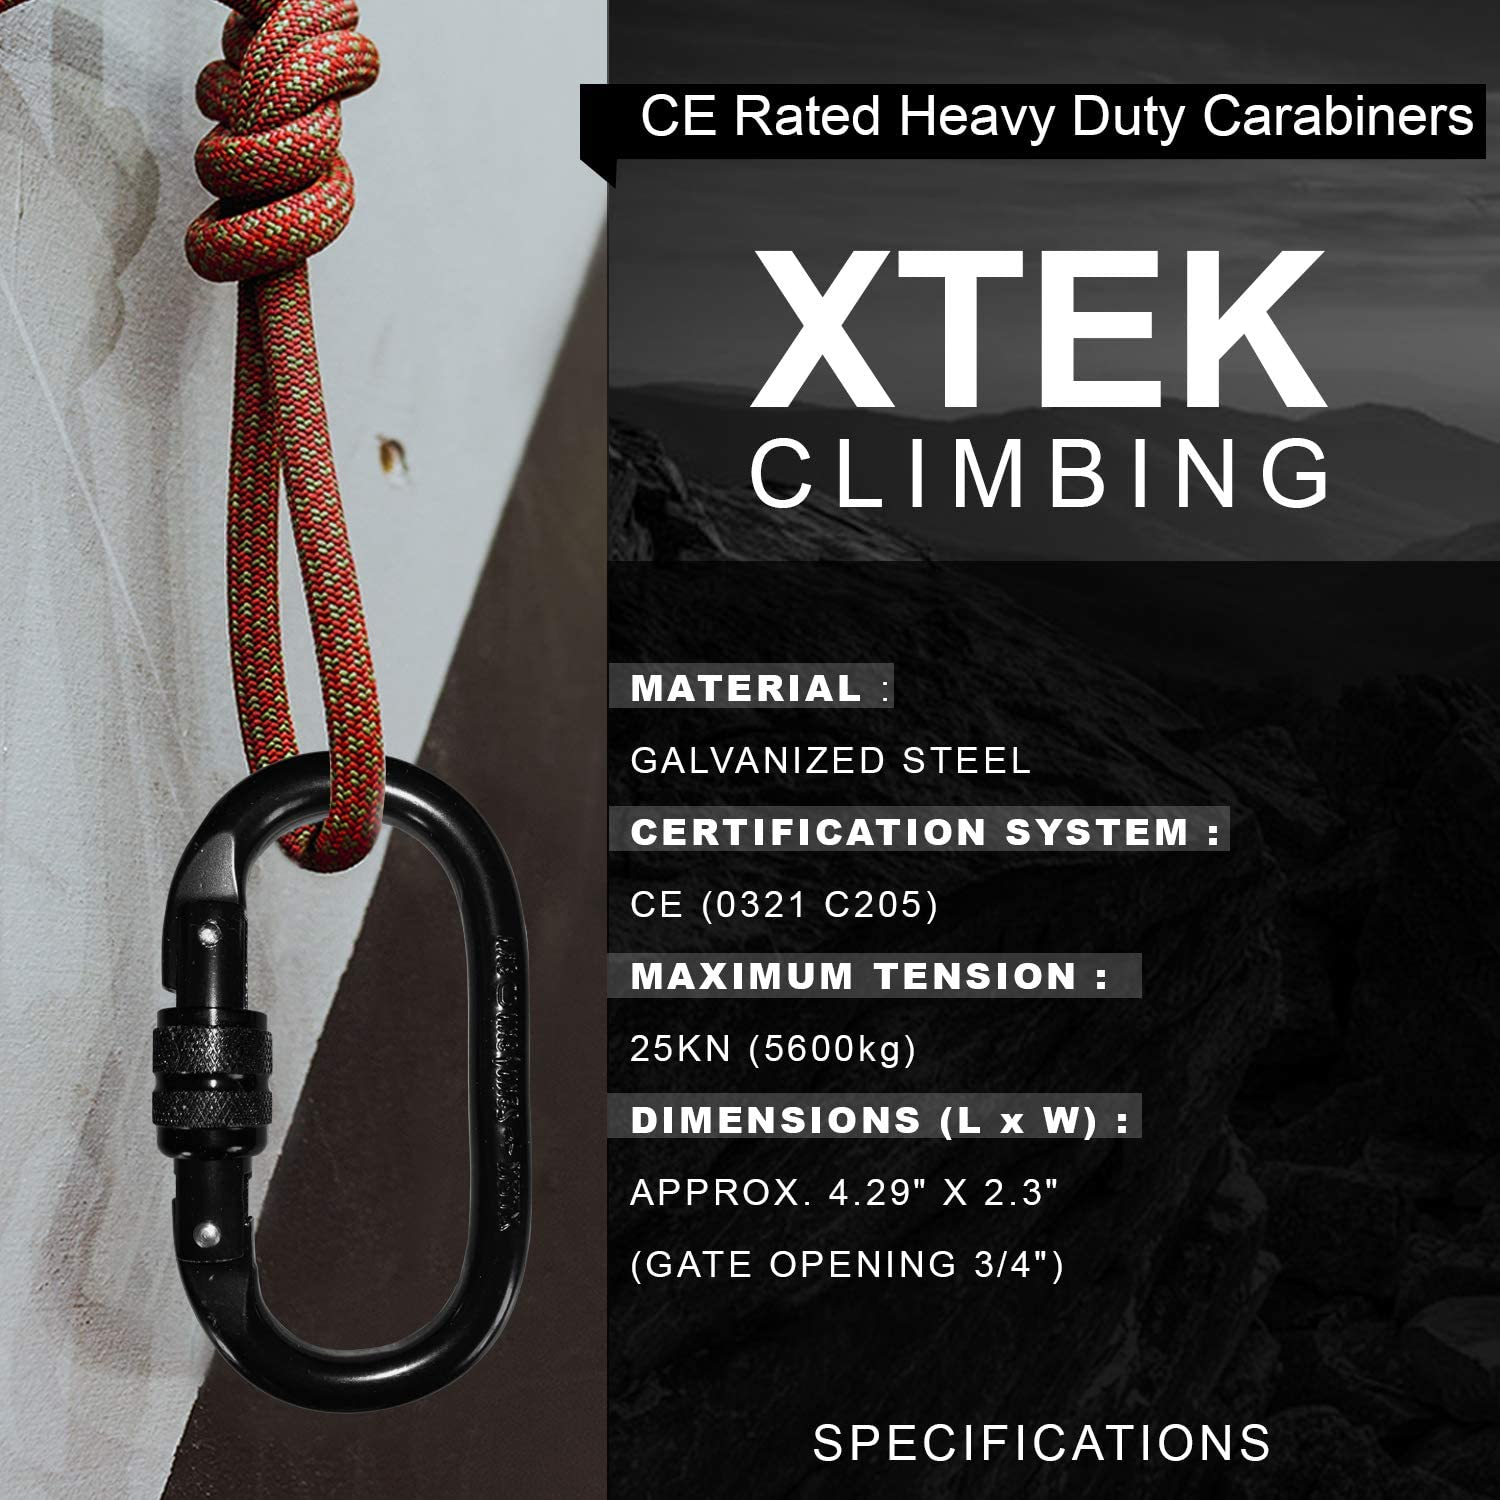 25kn=5600lb O-Shaped Steel Climbing Carabiner Screw Lock Spring Gate Protection,CE Rated Heavy Duty Carabiners For Rock Climbing Rappelling Hiking Hanging Ropes Camping Slack Lines Rigging /& Anchoring